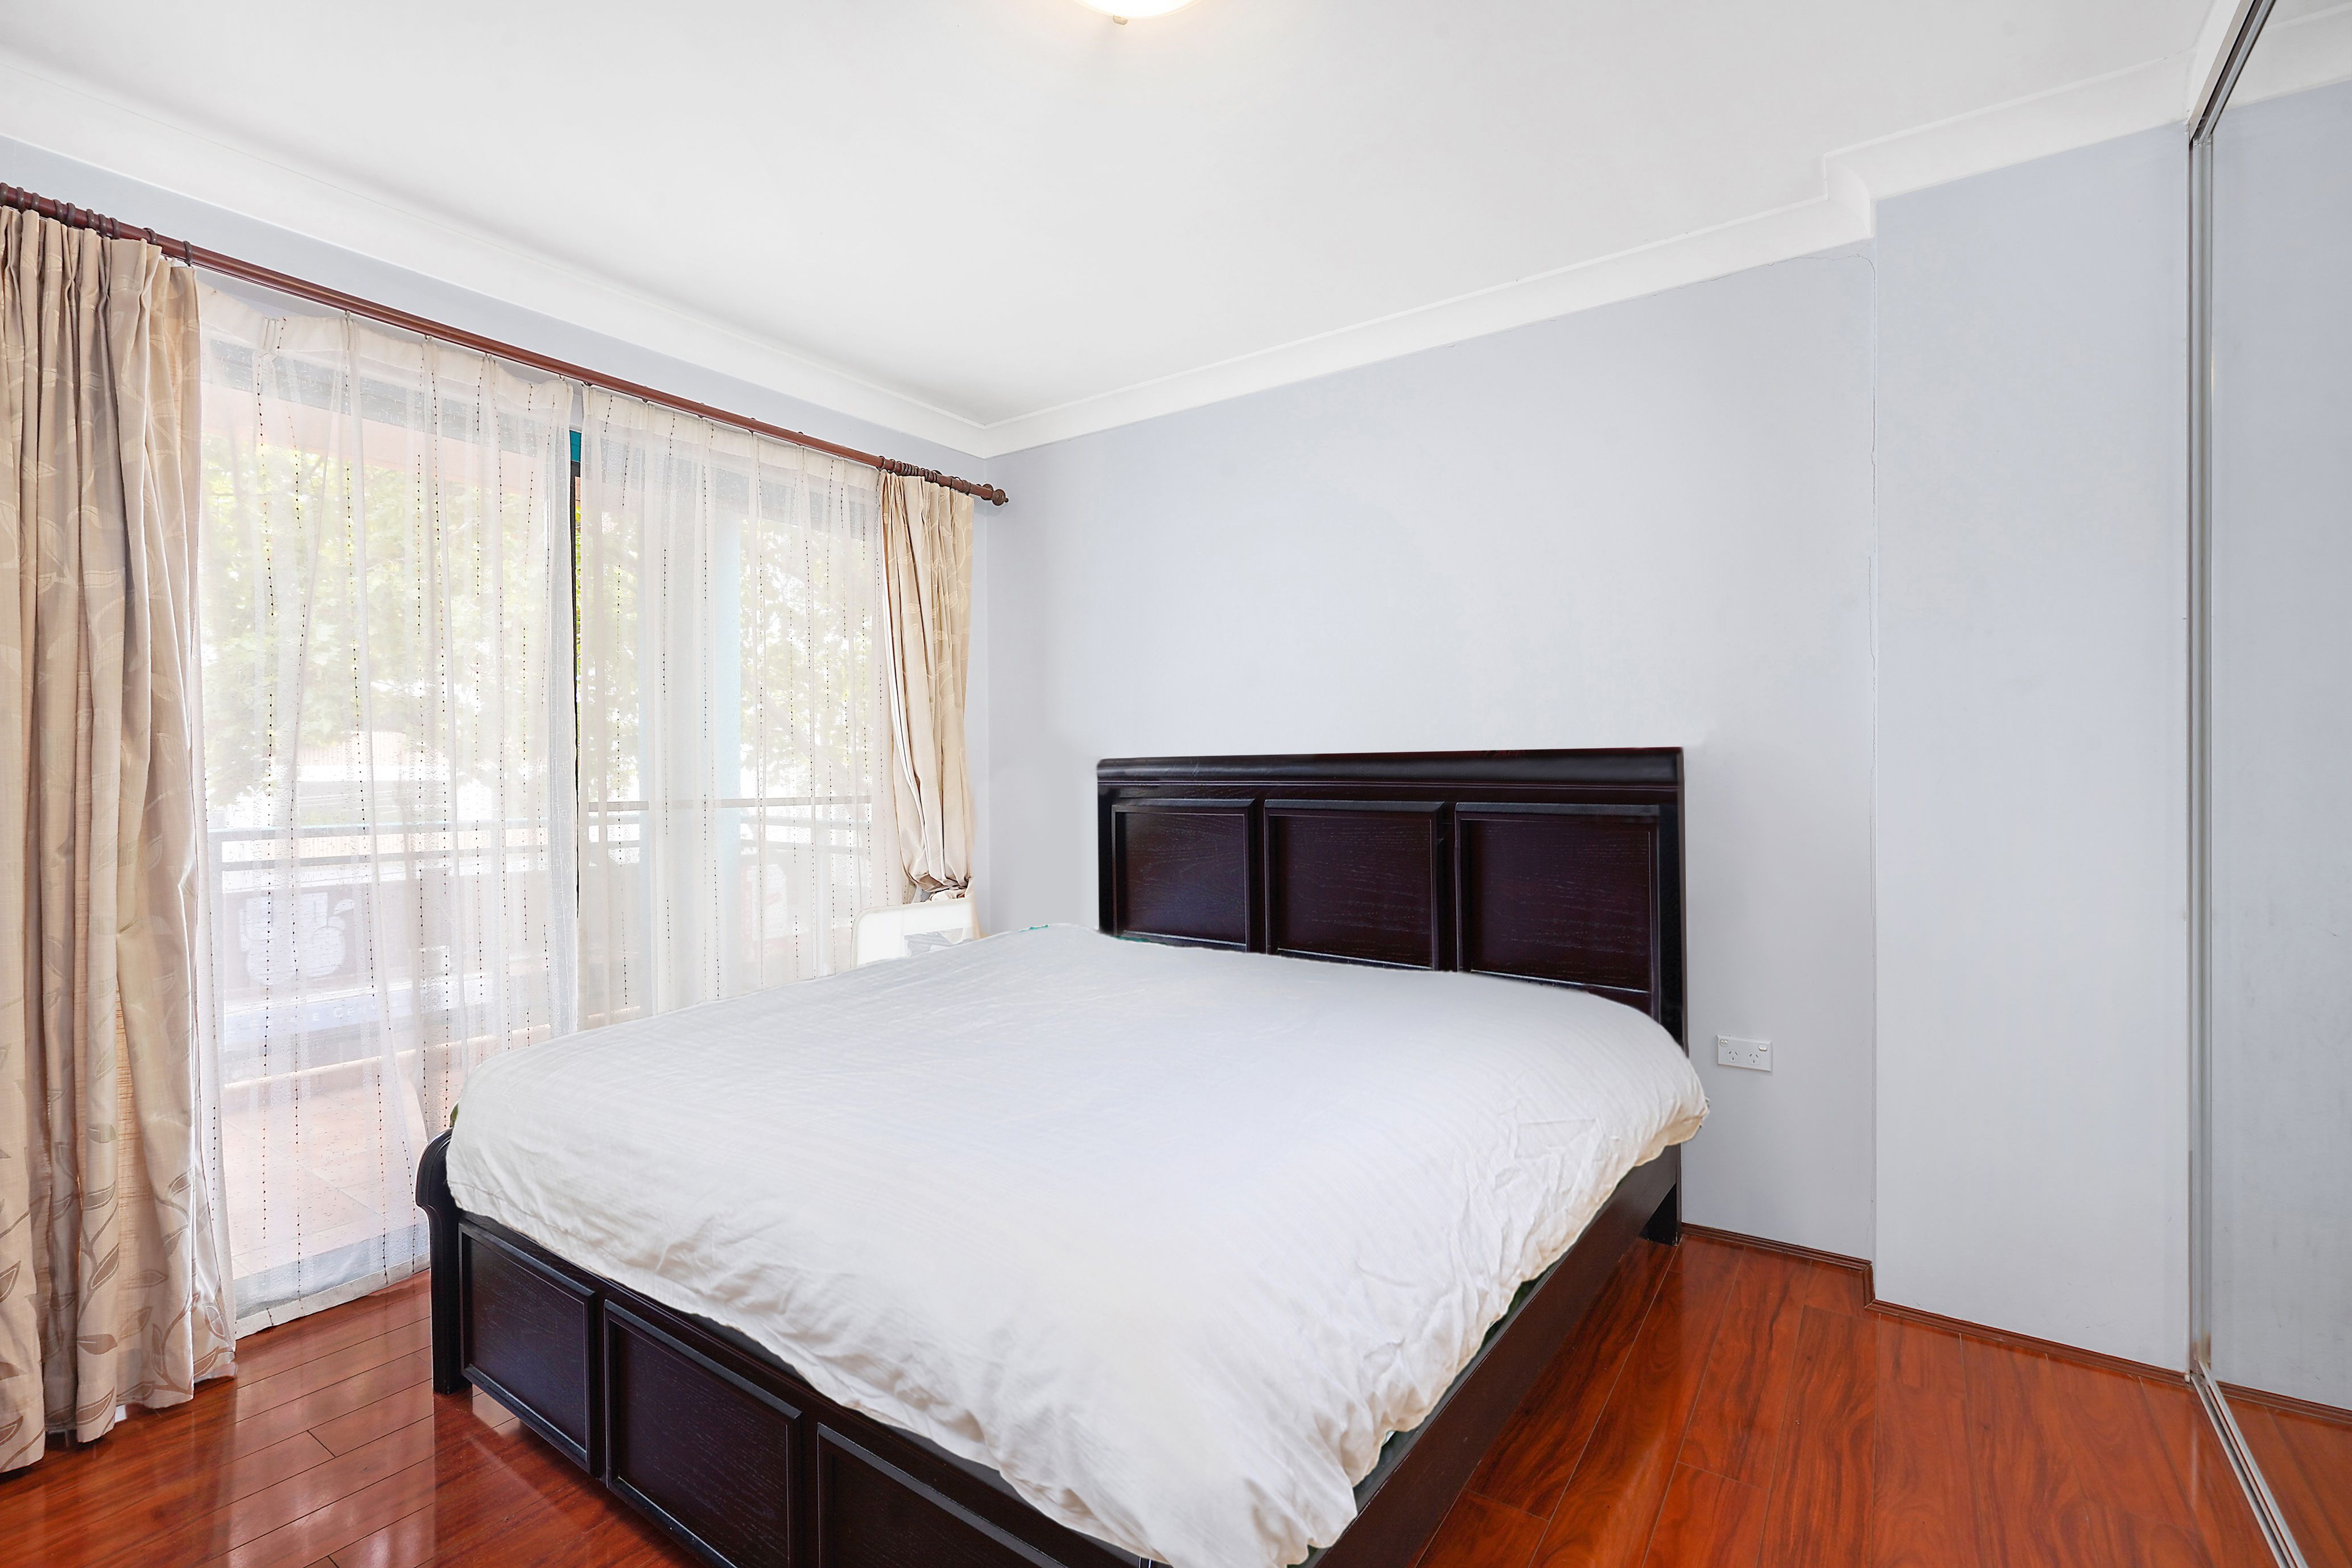 Real Estate For Sale 19 16 22 Burwood Road Burwood Nsw